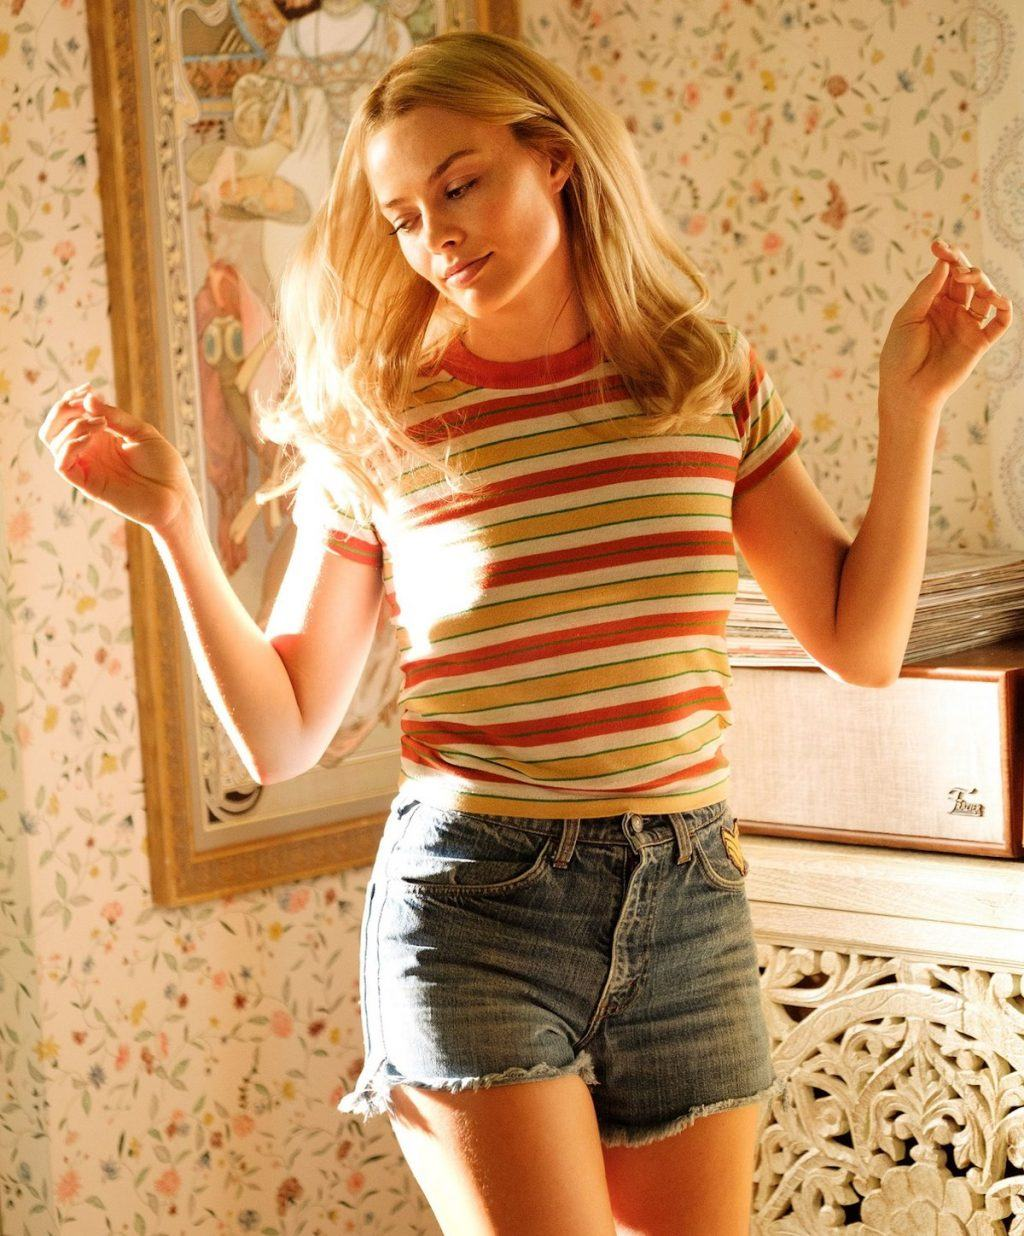 """Margot Robbie Tarantino-filmen """"Once Upon a Time in Hollywood""""."""